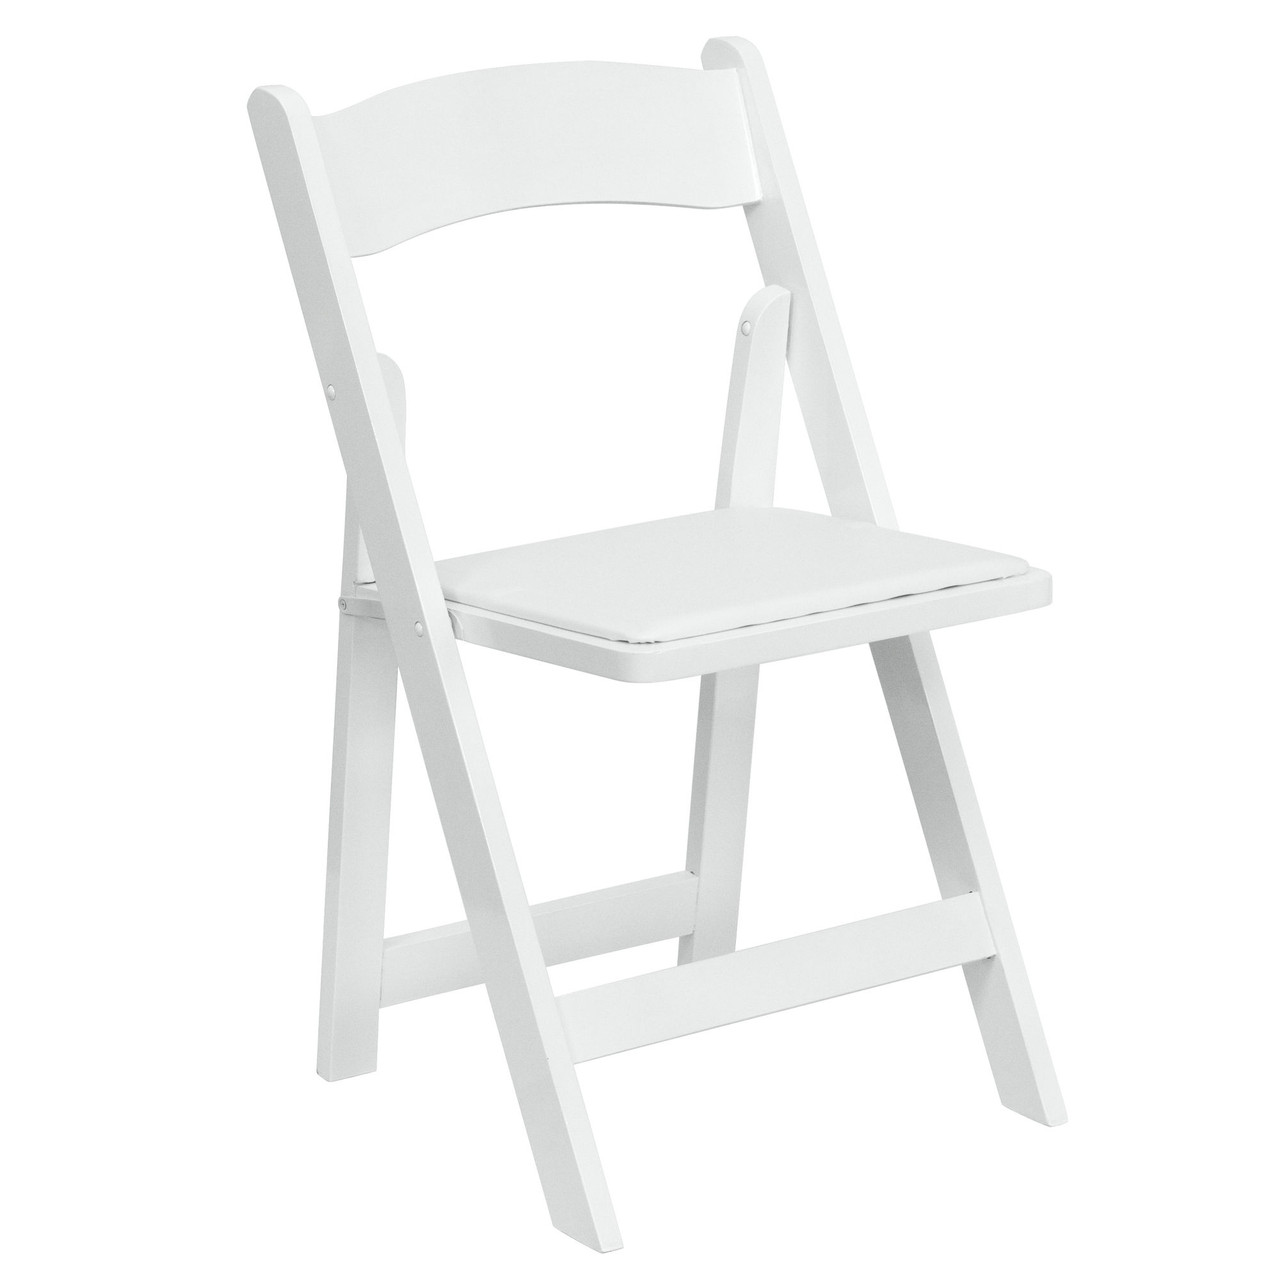 Admirable White Wood Folding Wedding Chairs Xf 2901 Wh Wood Gg Caraccident5 Cool Chair Designs And Ideas Caraccident5Info